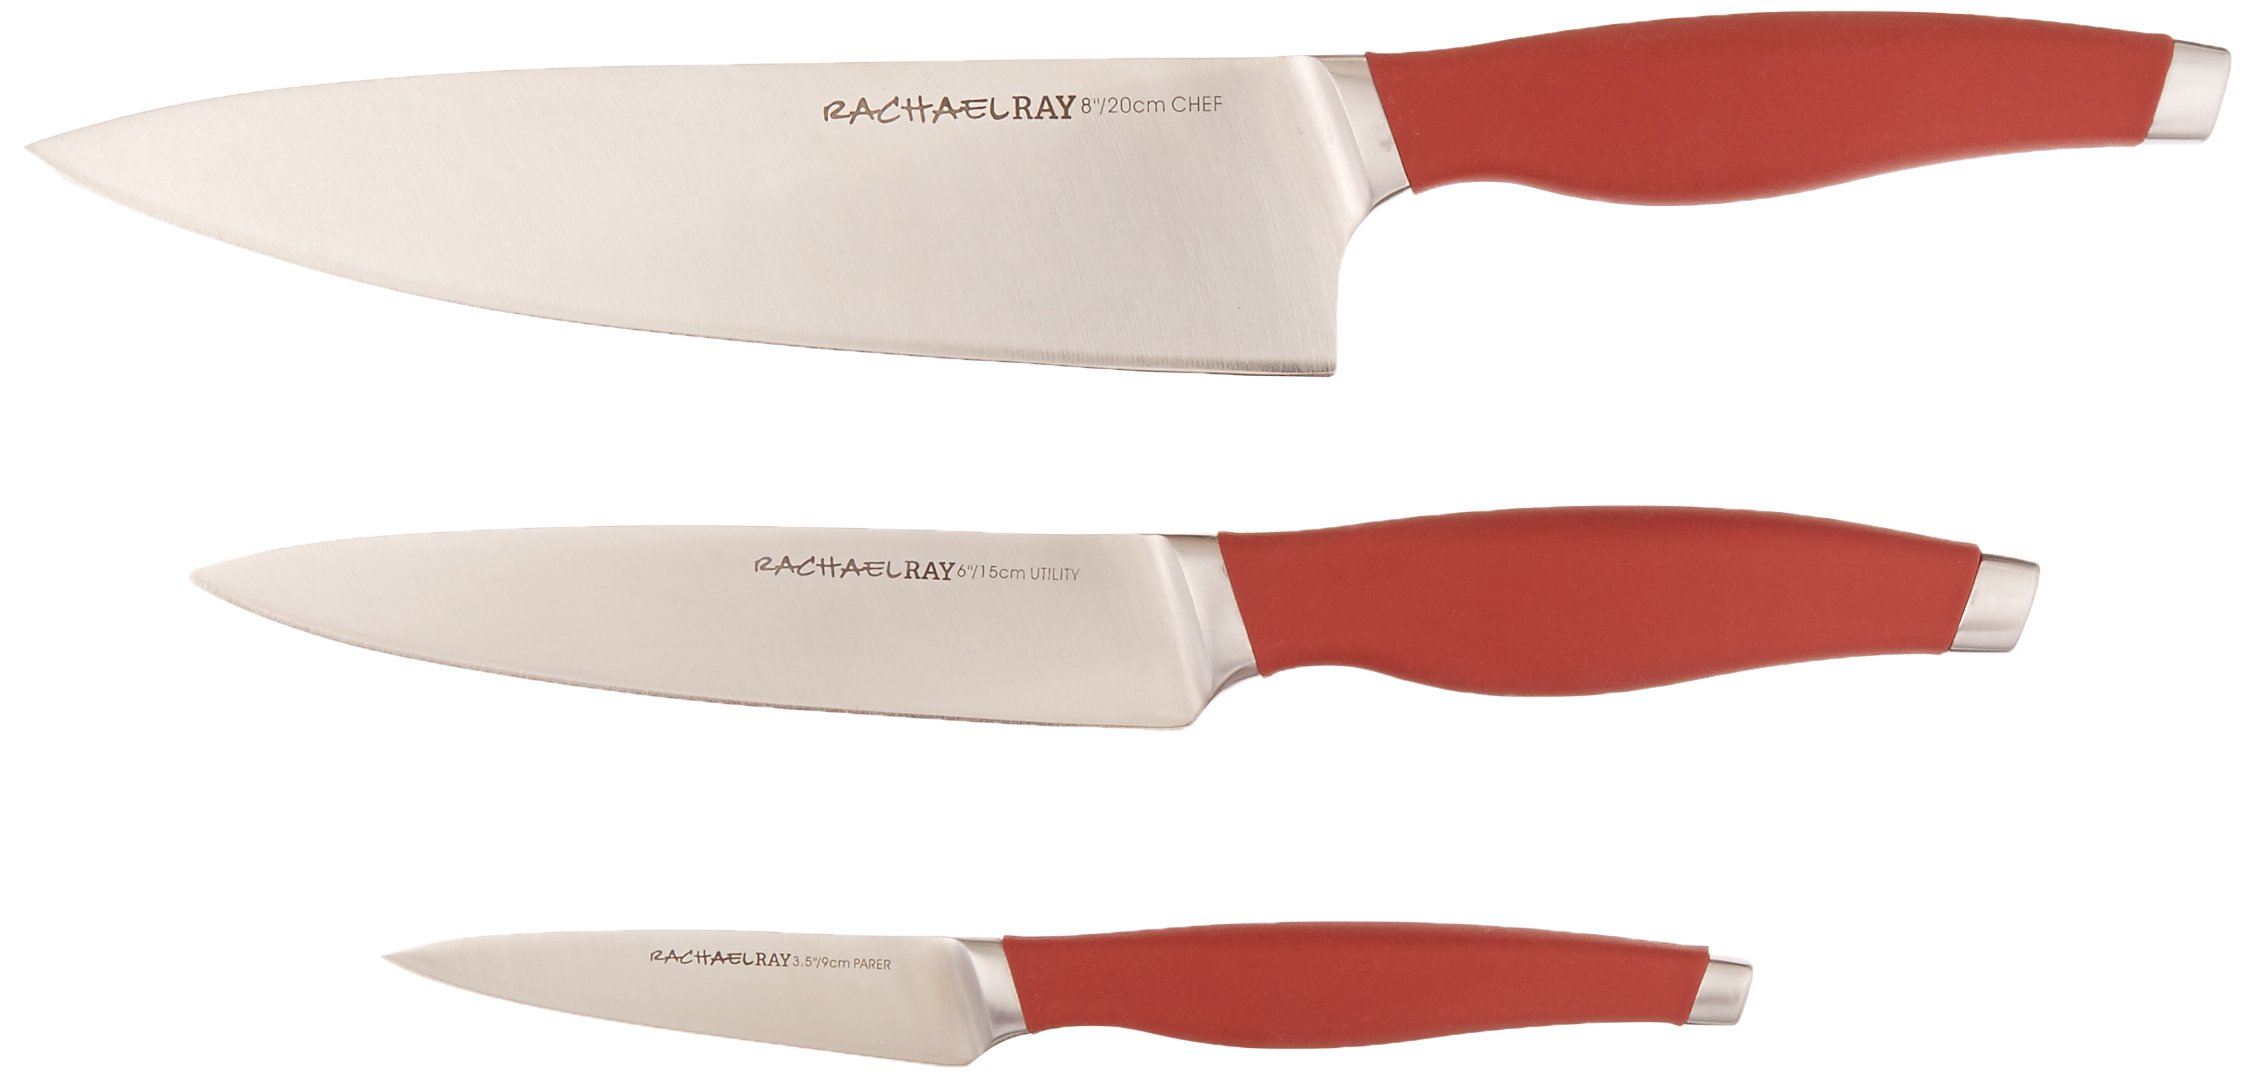 Rachael Ray Cucina 3-Piece Japanese Stainless Steel Chef Knife Set